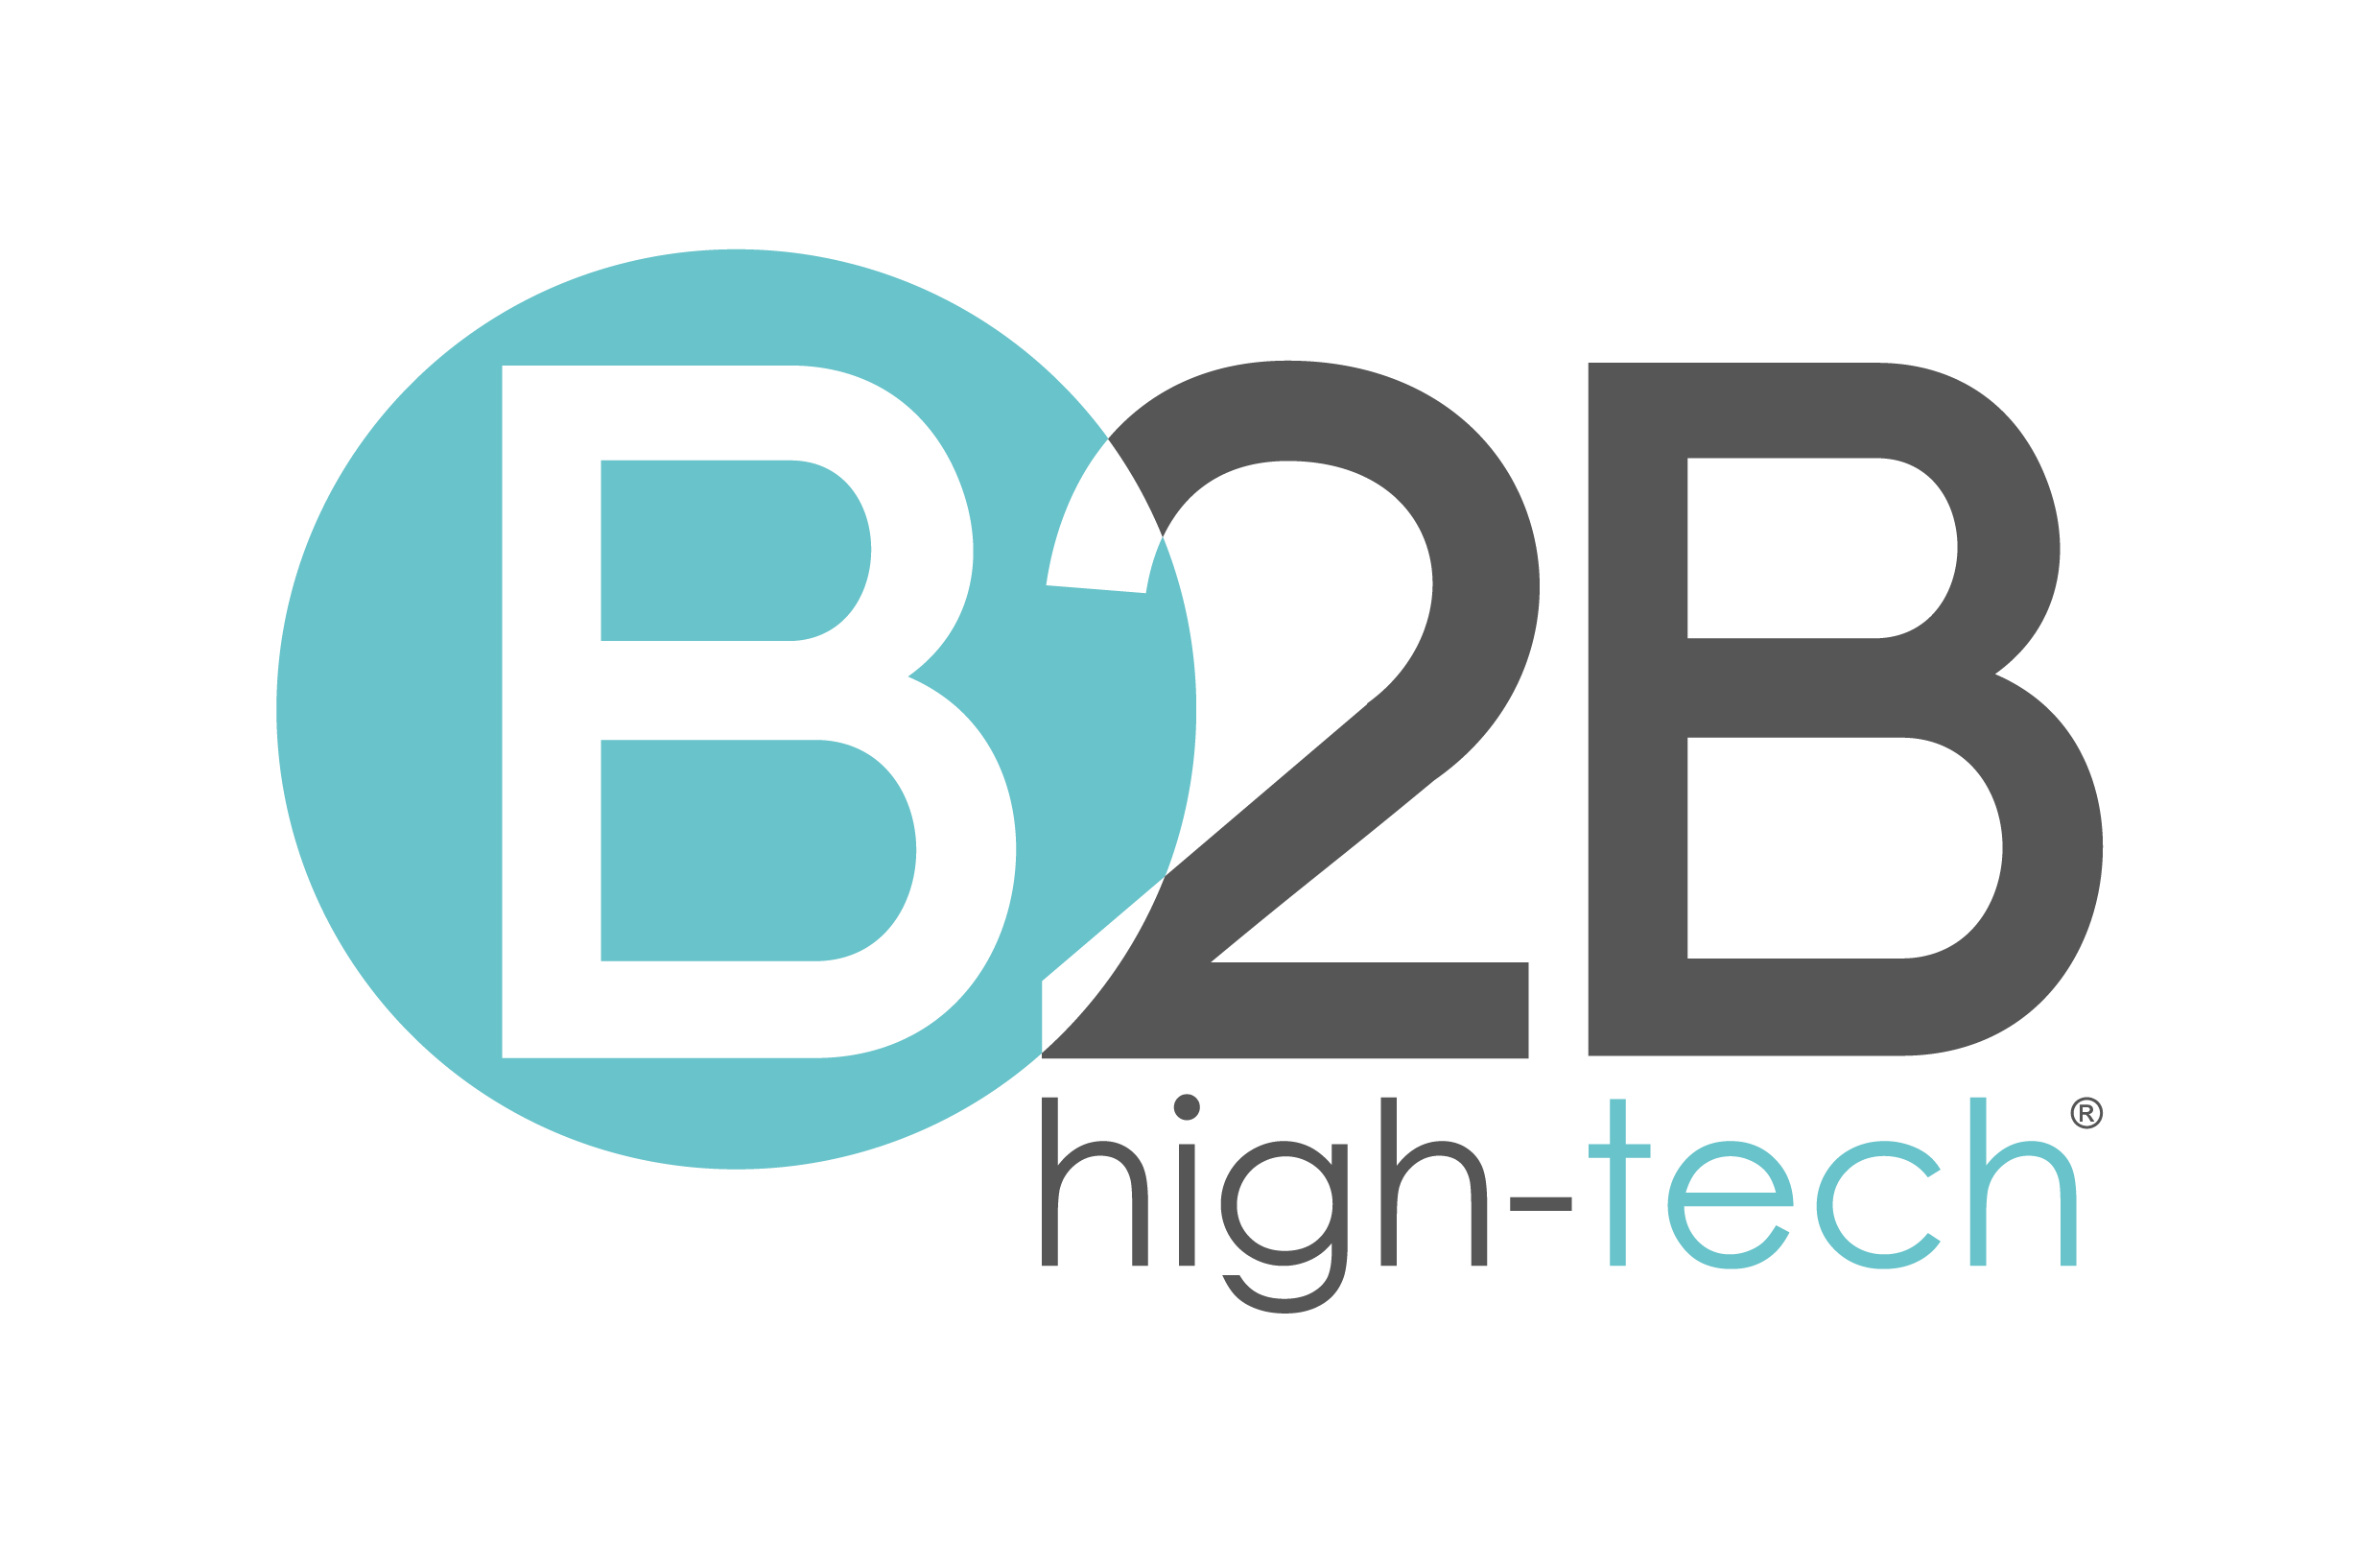 B2BHIGHTECH